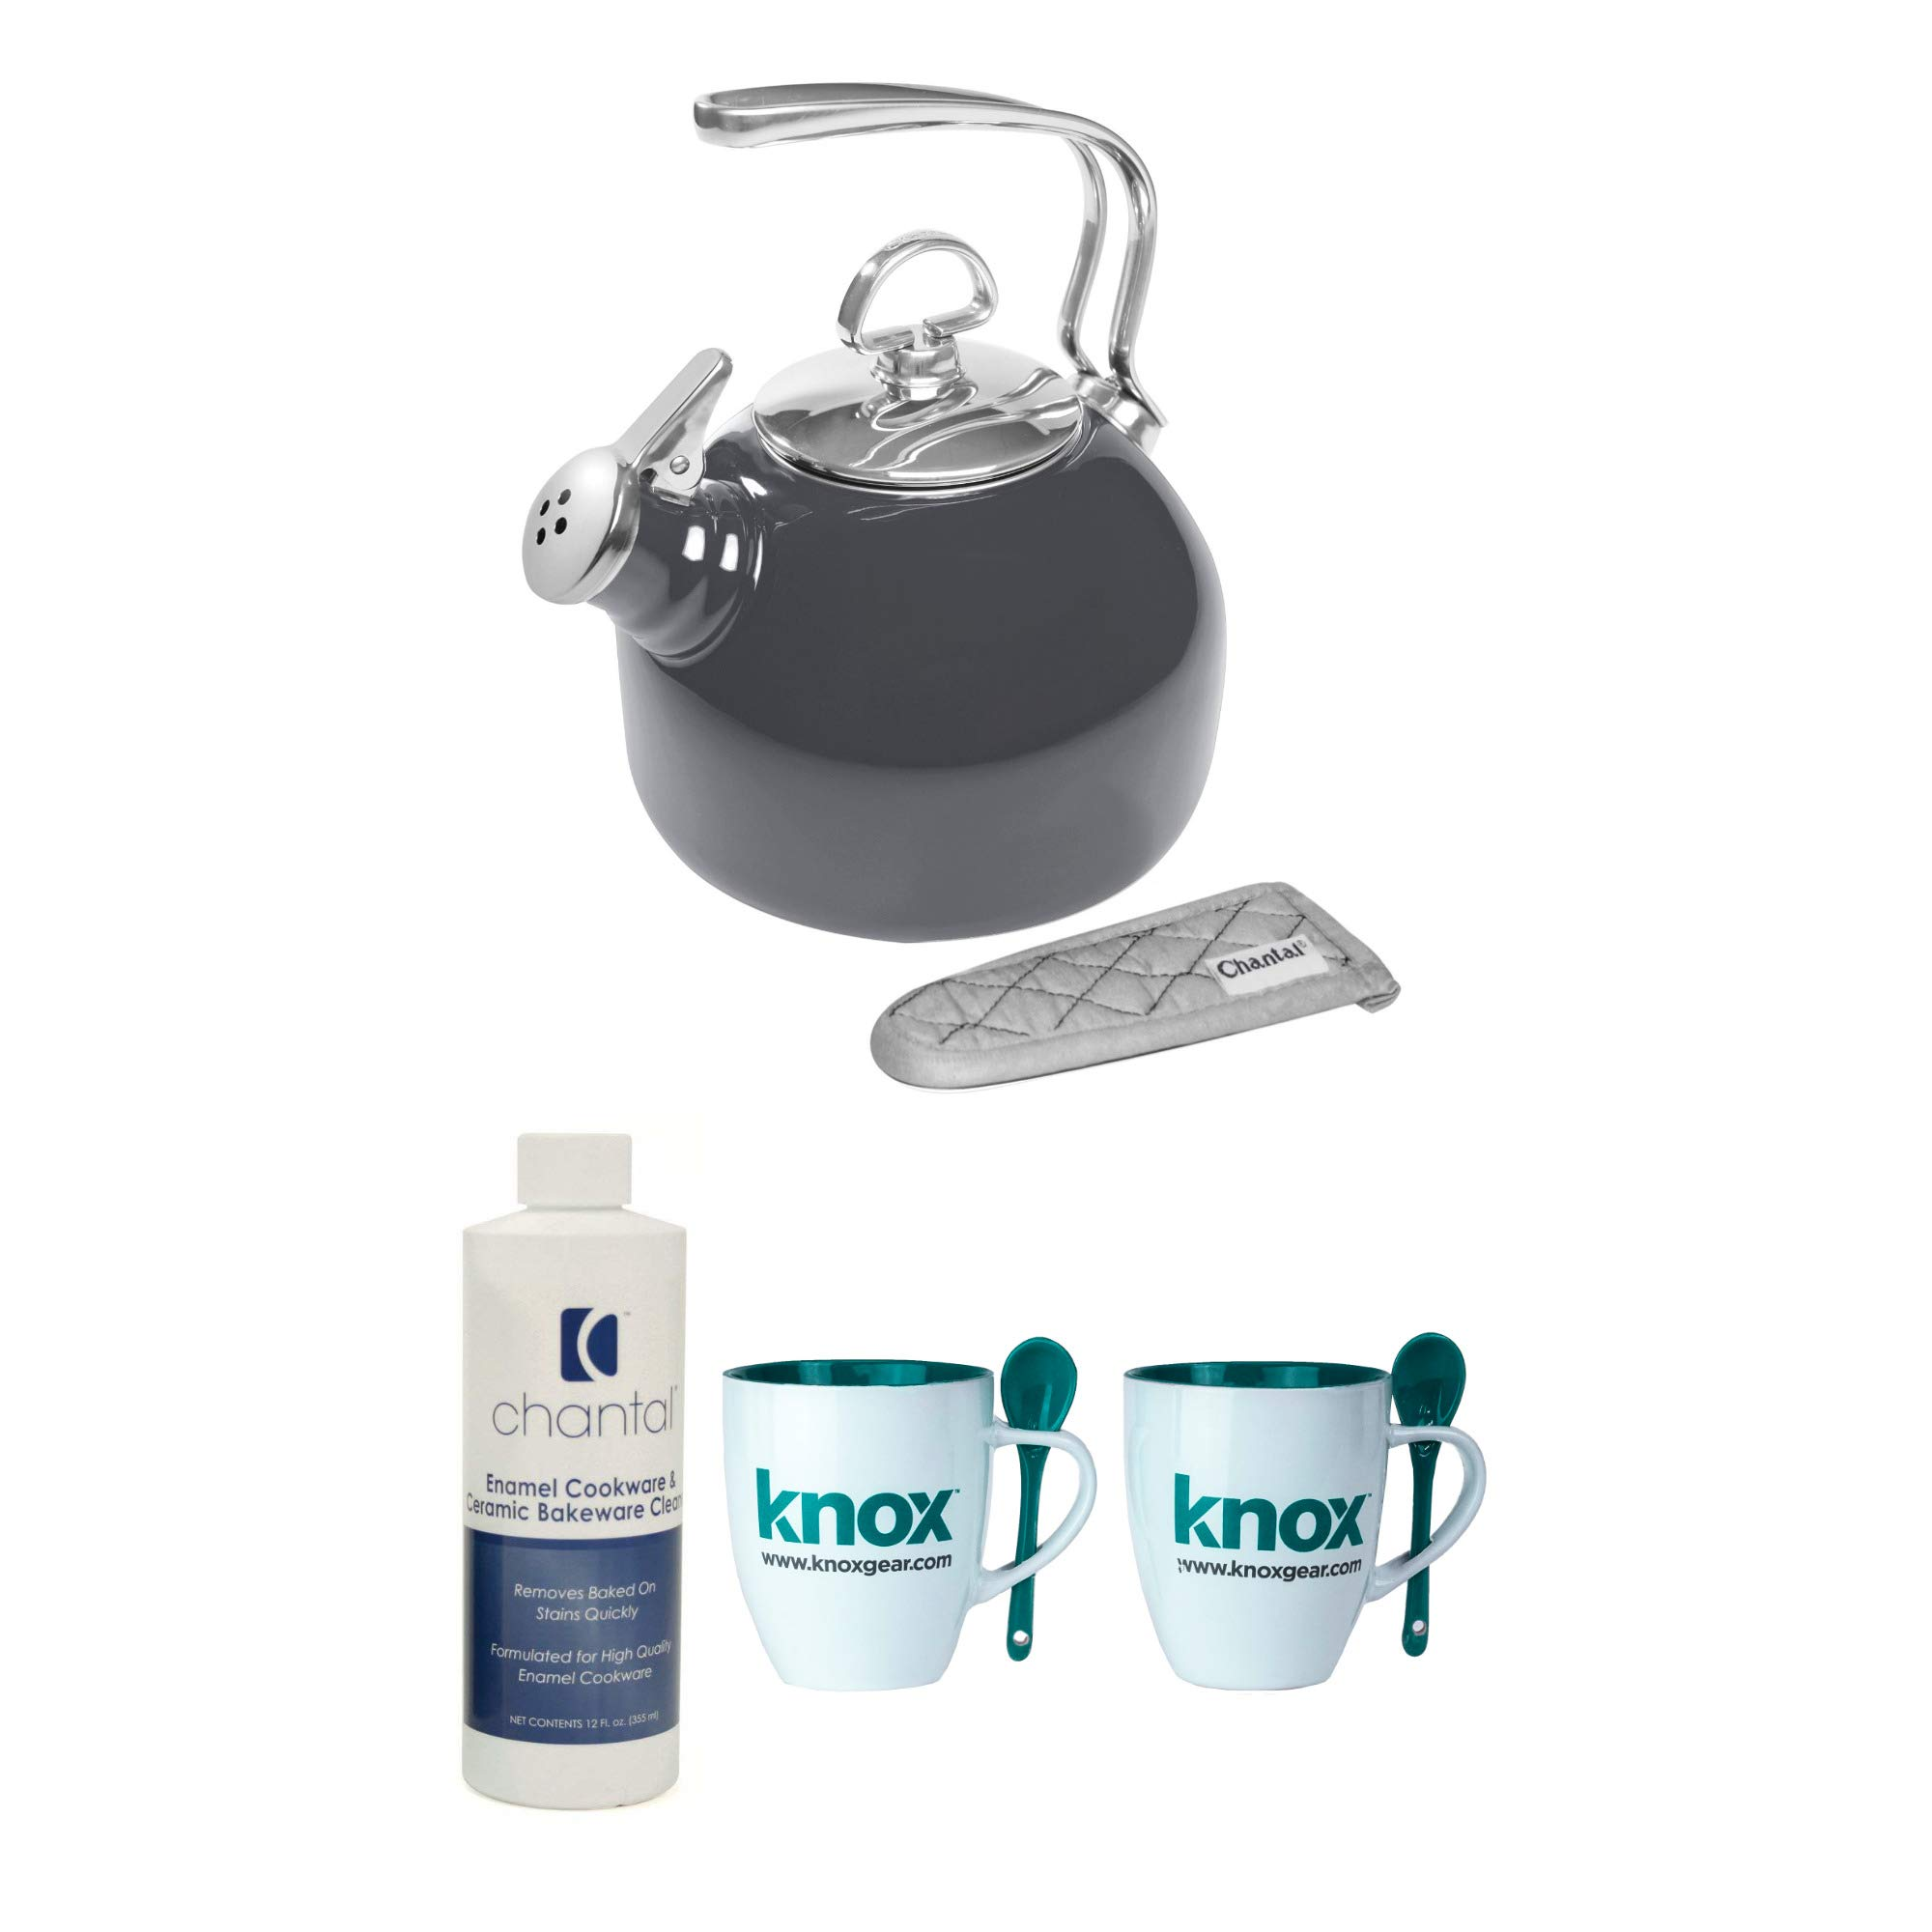 Chantal Enamel-On-Steel Classic Teakettle, Onyx Includes Chantal Enamel and Ceramic Cookware Cleaner and 2 Mugs